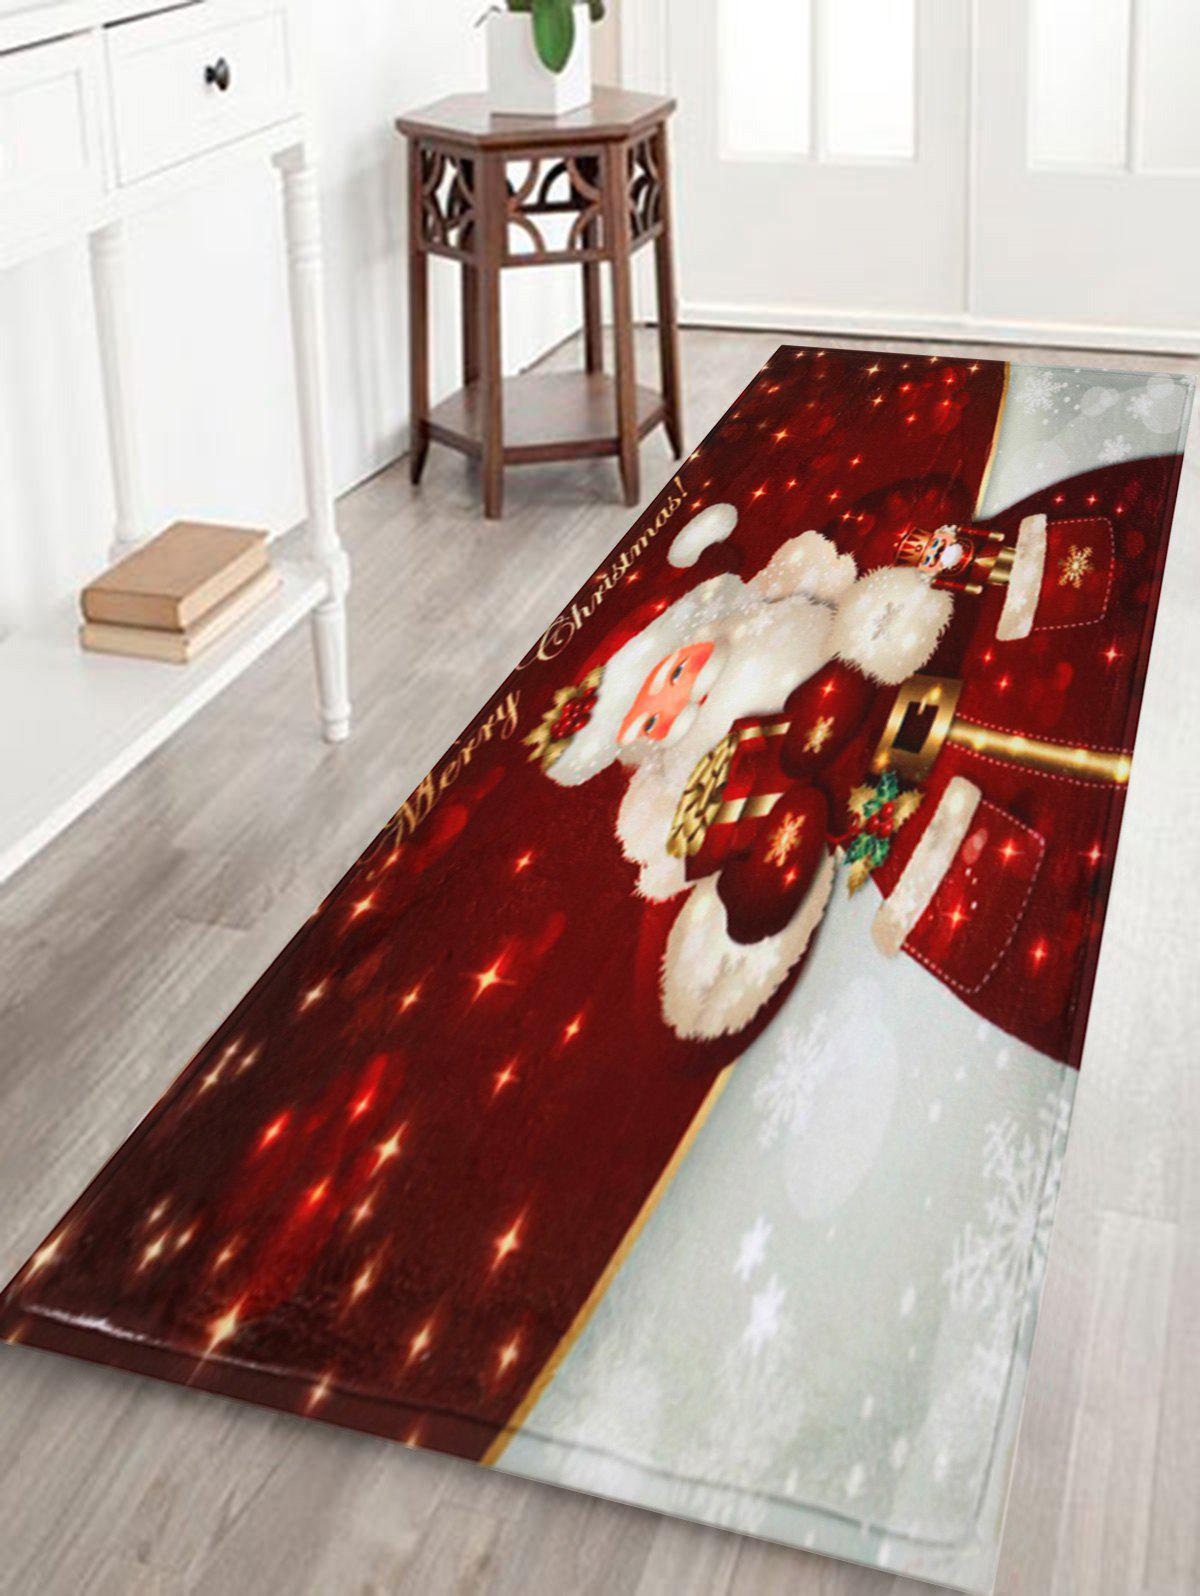 Christmas Santa Claus Antislip Bath MatHOME<br><br>Size: W24 INCH * L71 INCH; Color: DARK RED; Products Type: Bath rugs; Materials: Coral FLeece; Pattern: Santa Claus; Style: Festival; Shape: Rectangular; Package Contents: 1 x Rug;